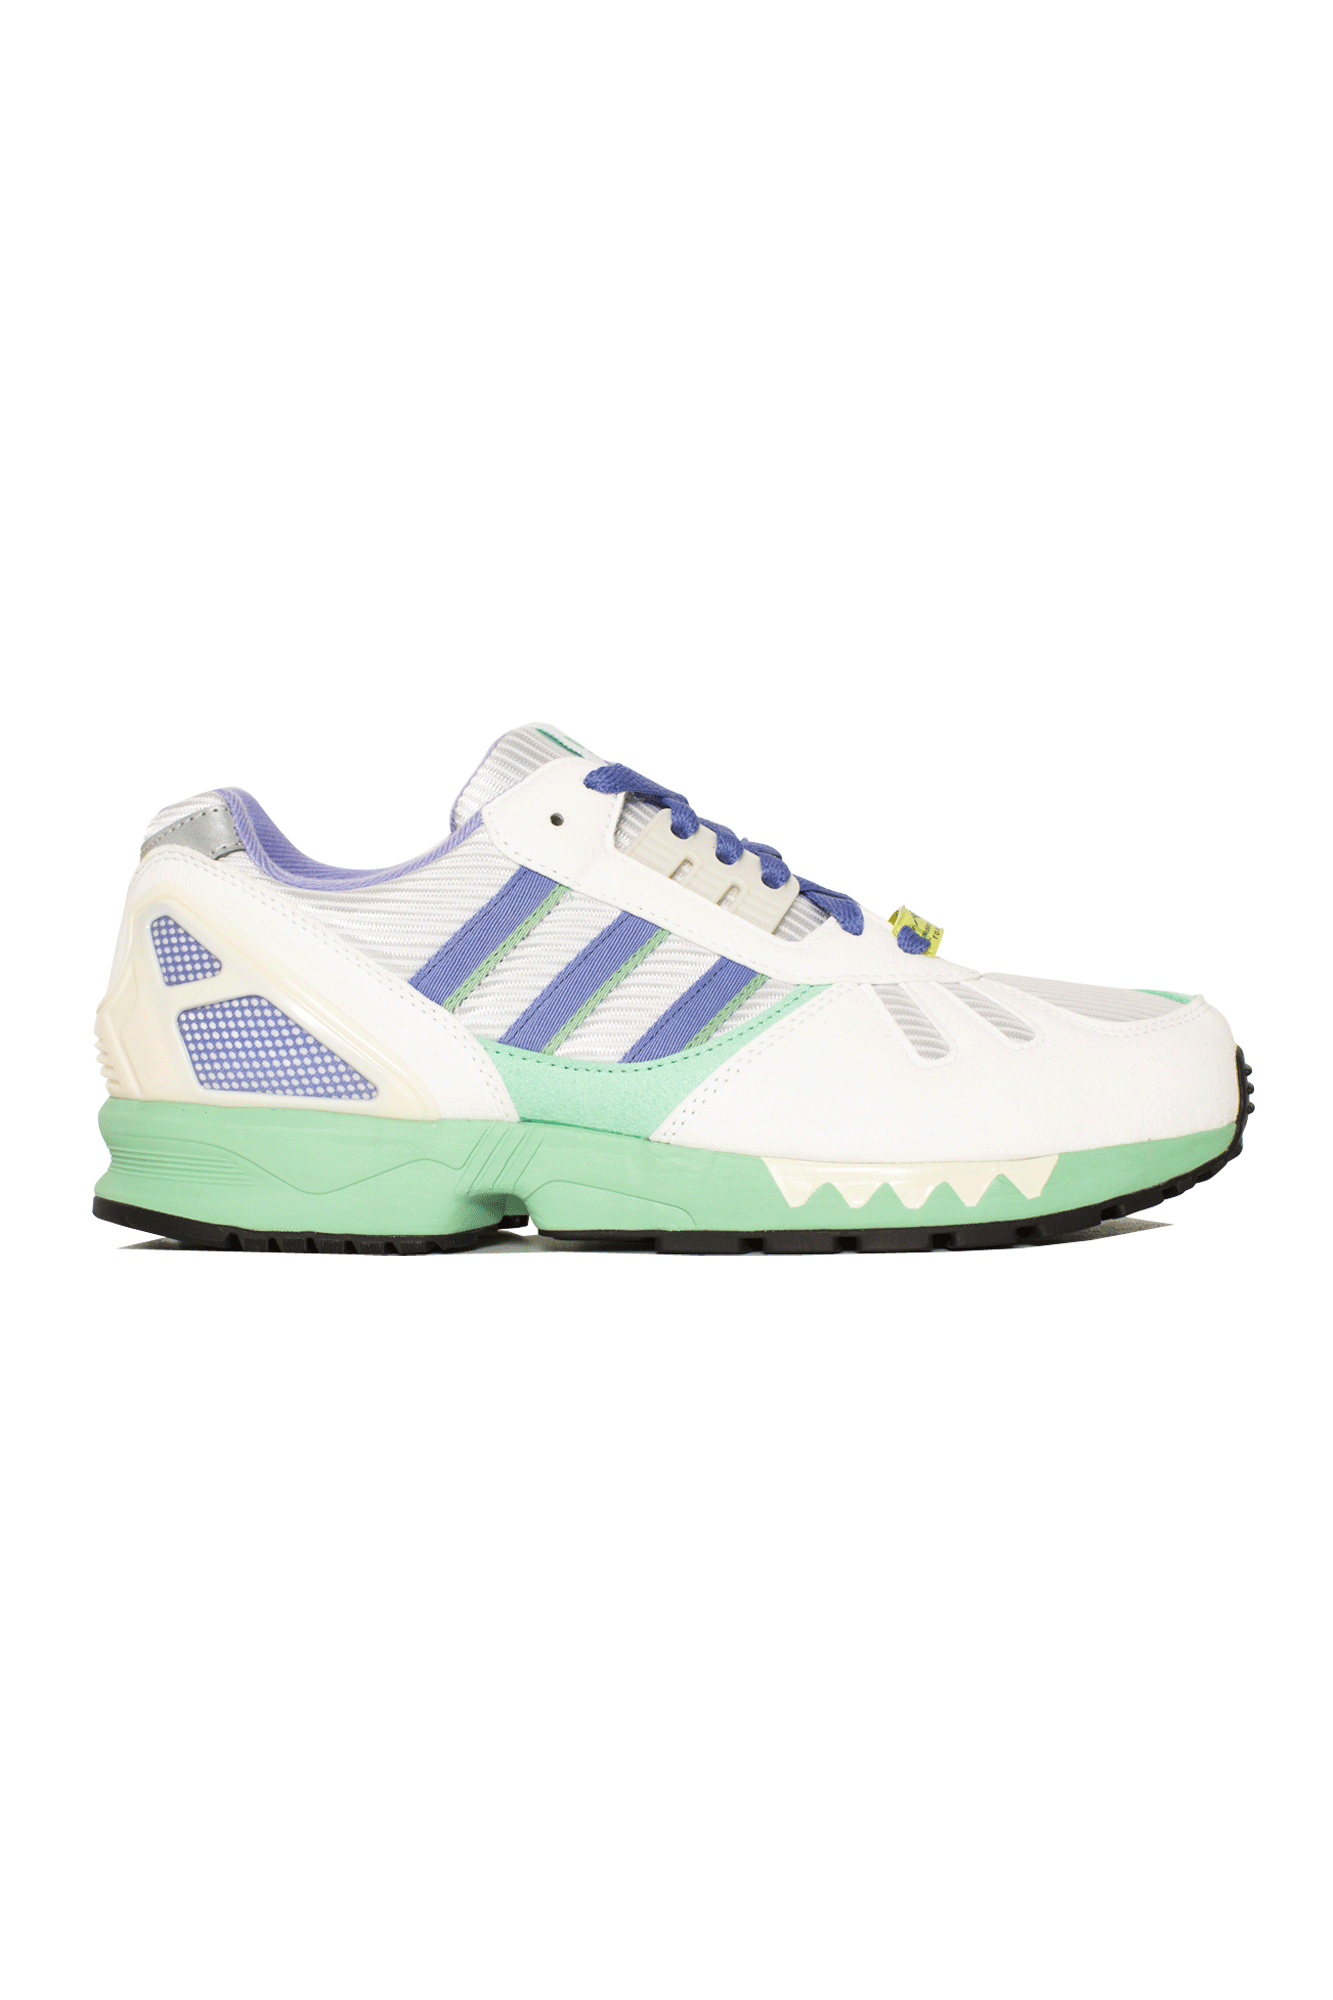 Sneakers Adidas Originals ZX 7000 White - One Block Down